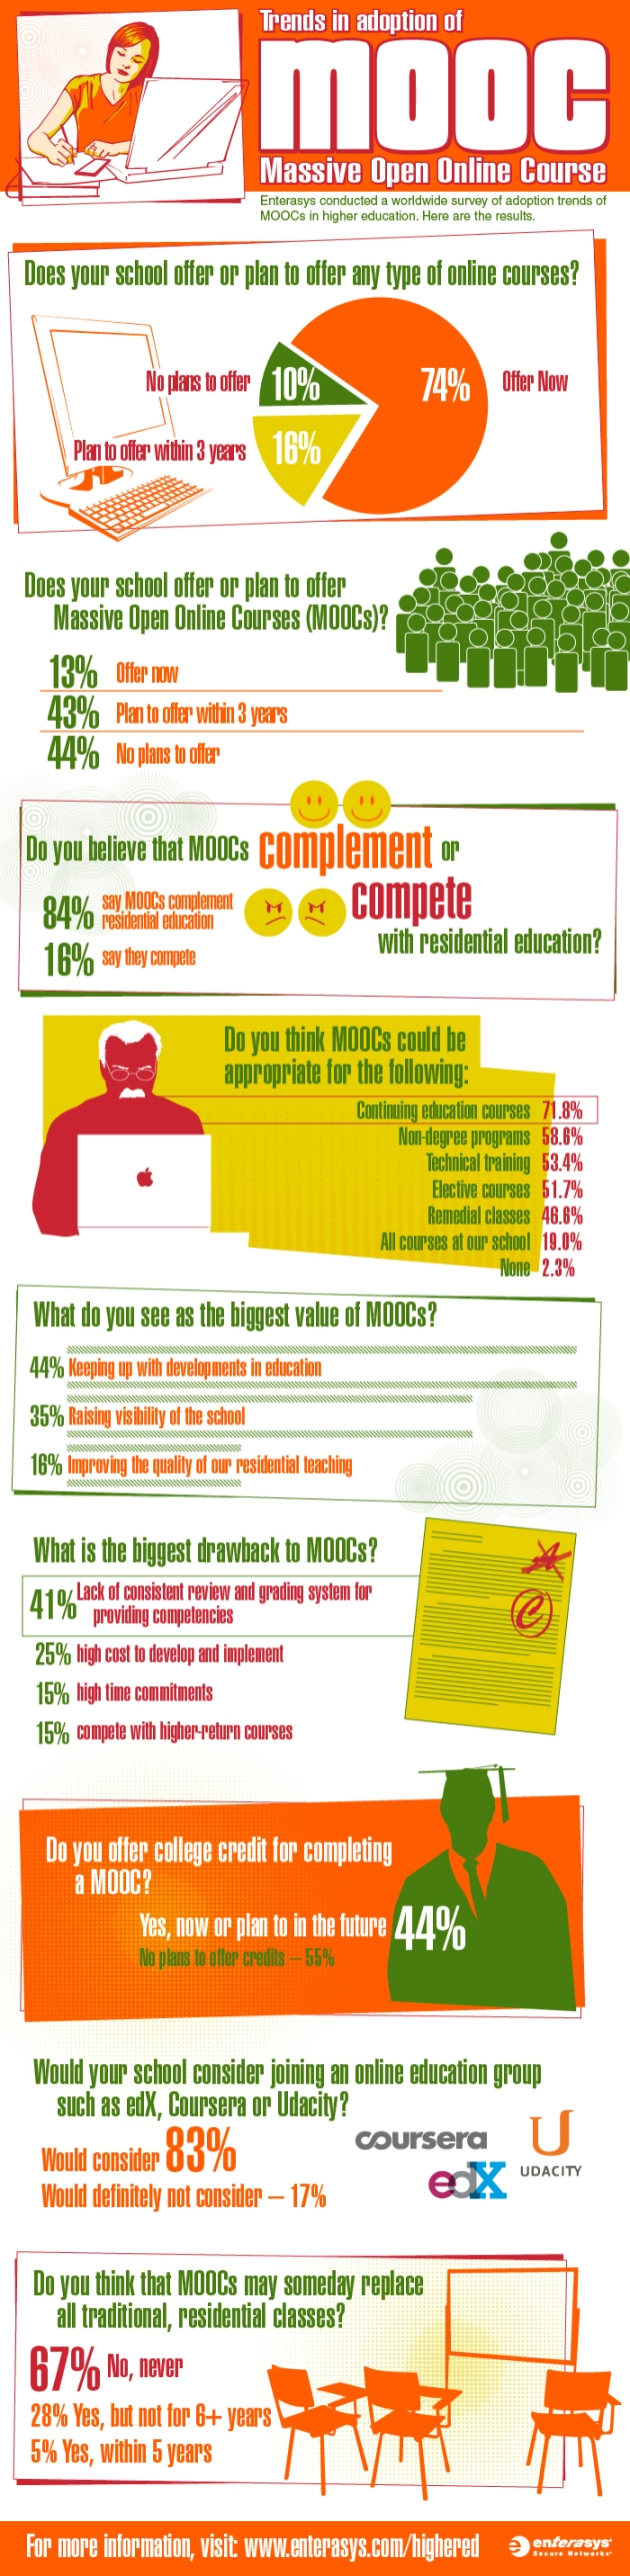 trends-in-adoption-of-mooc-massive-open-online-courses_5208fb7f201a0